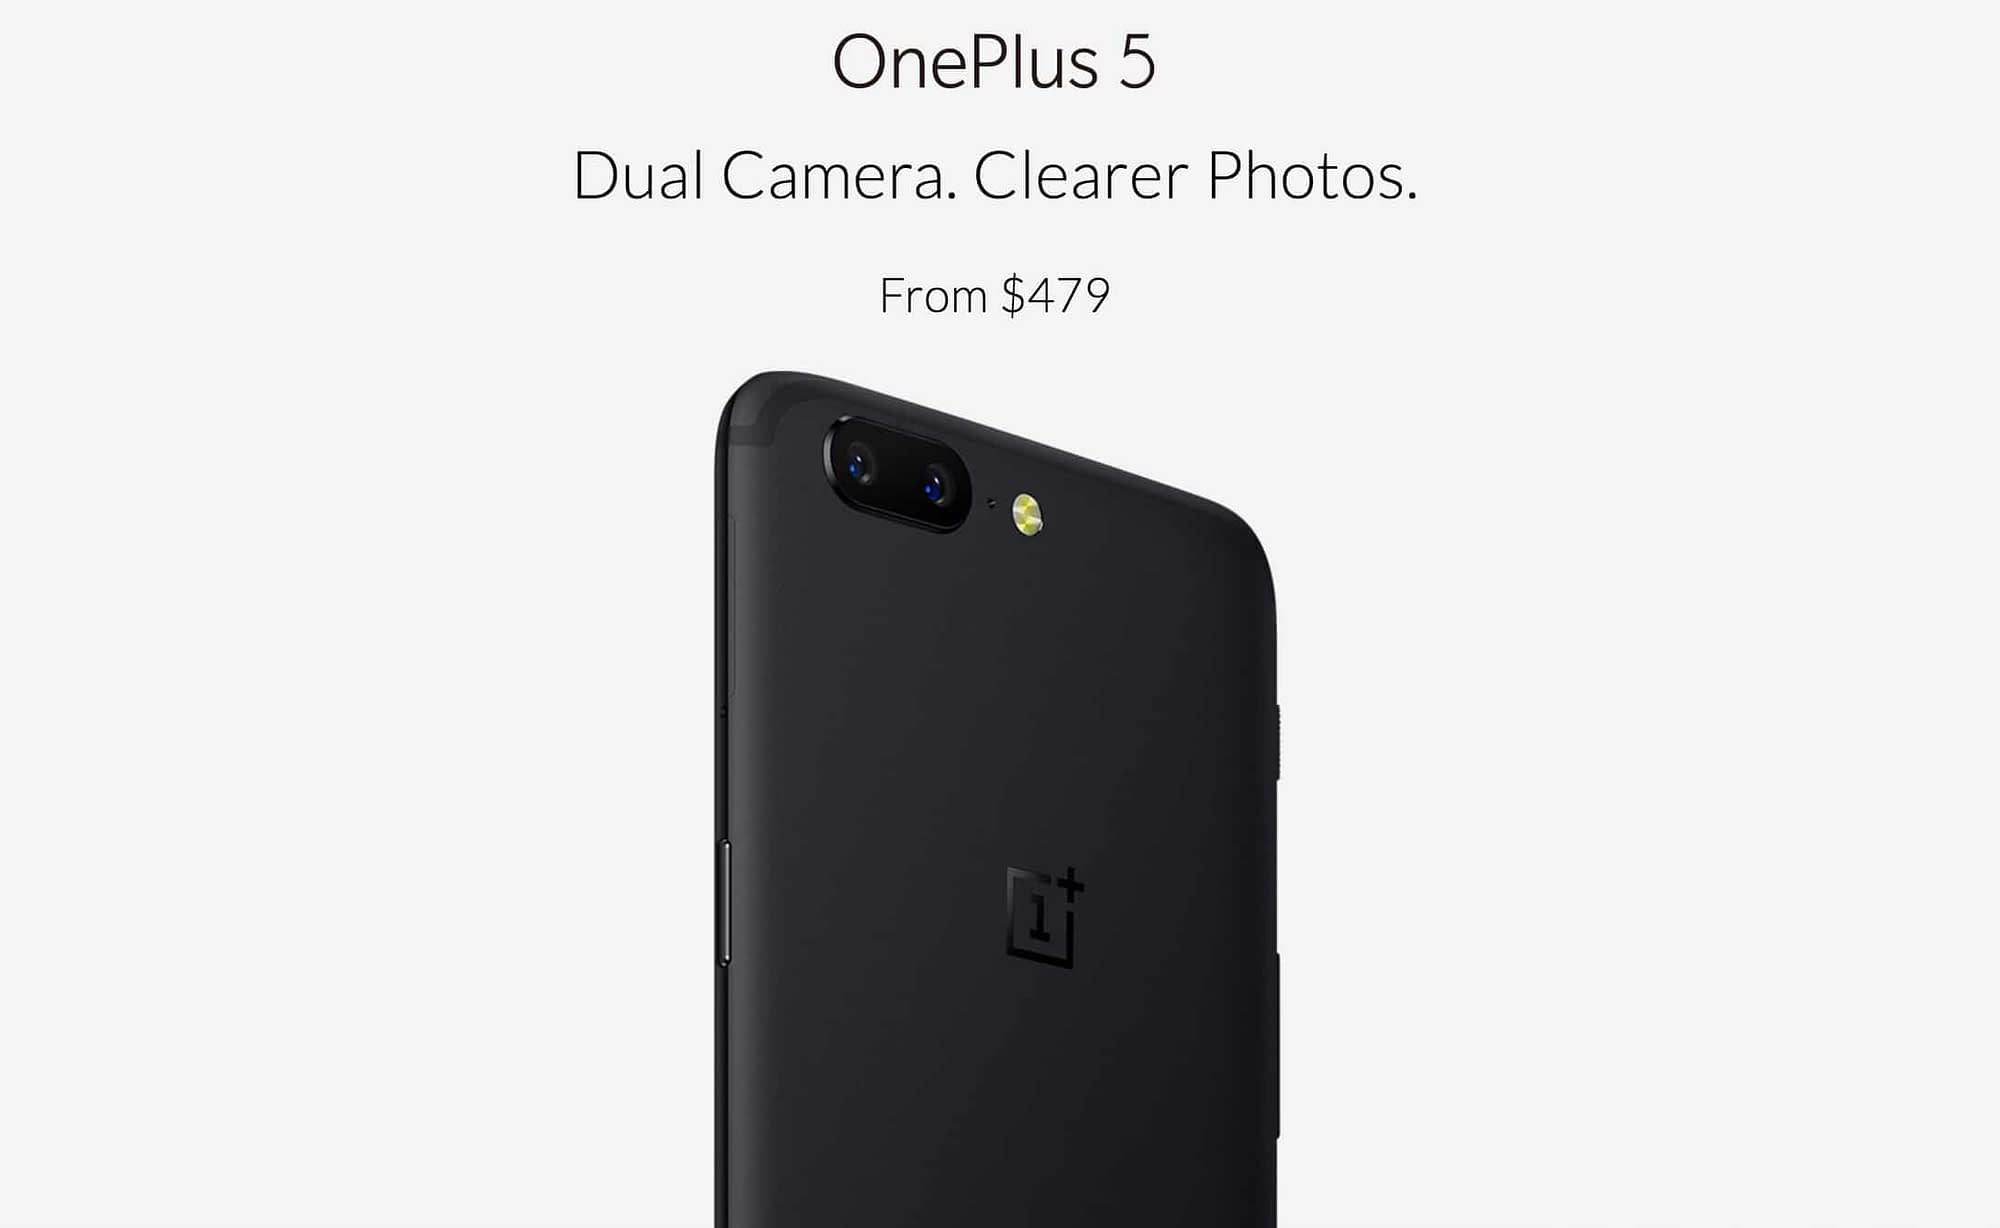 OnePlus 5 Features